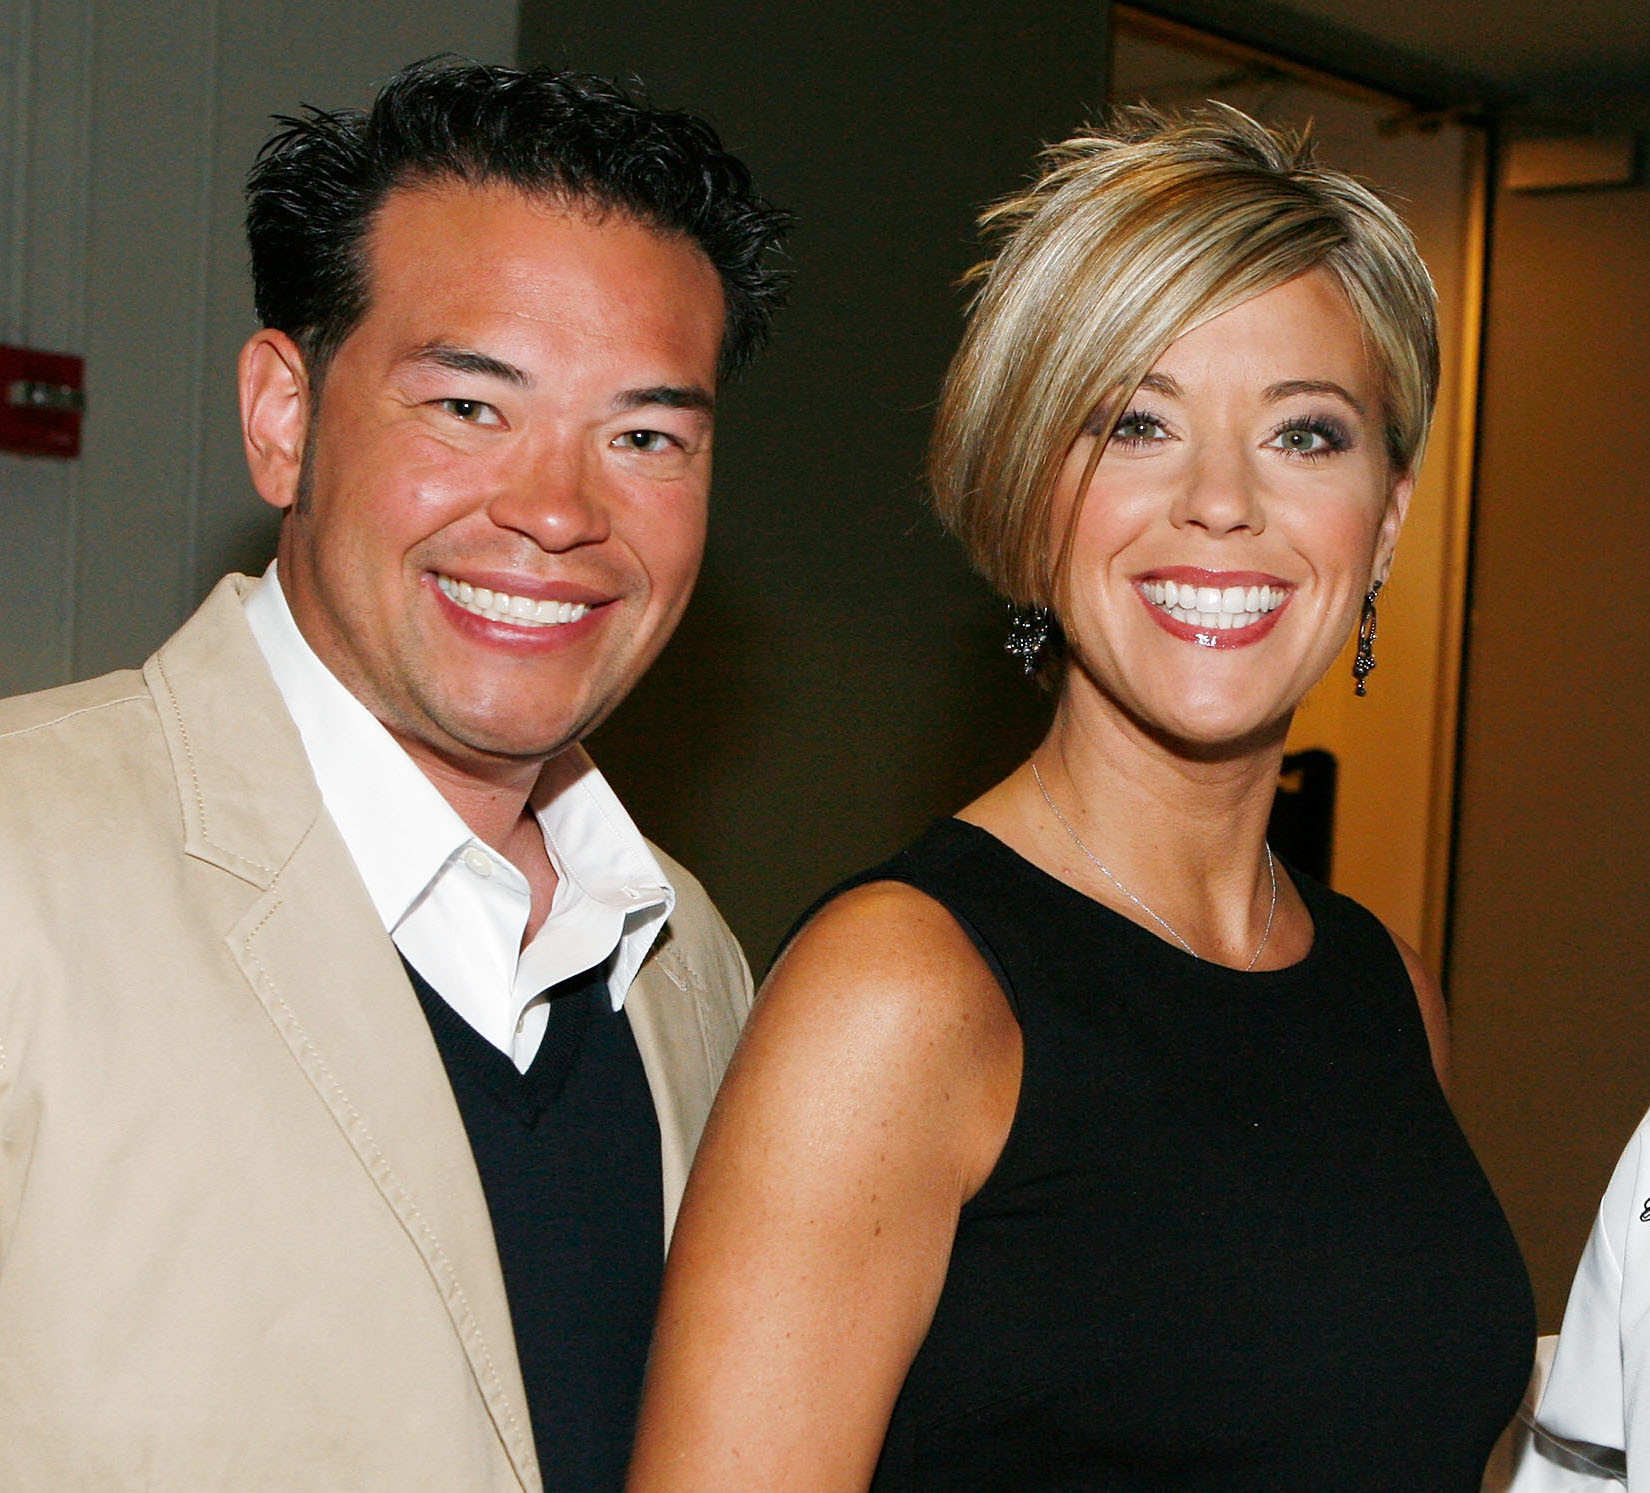 """""""jon-gosselin-says-hes-furious-kate-dragged-their-kids-on-tv-again-after-judge-ruled-it-was-not-in-their-best-interest"""""""